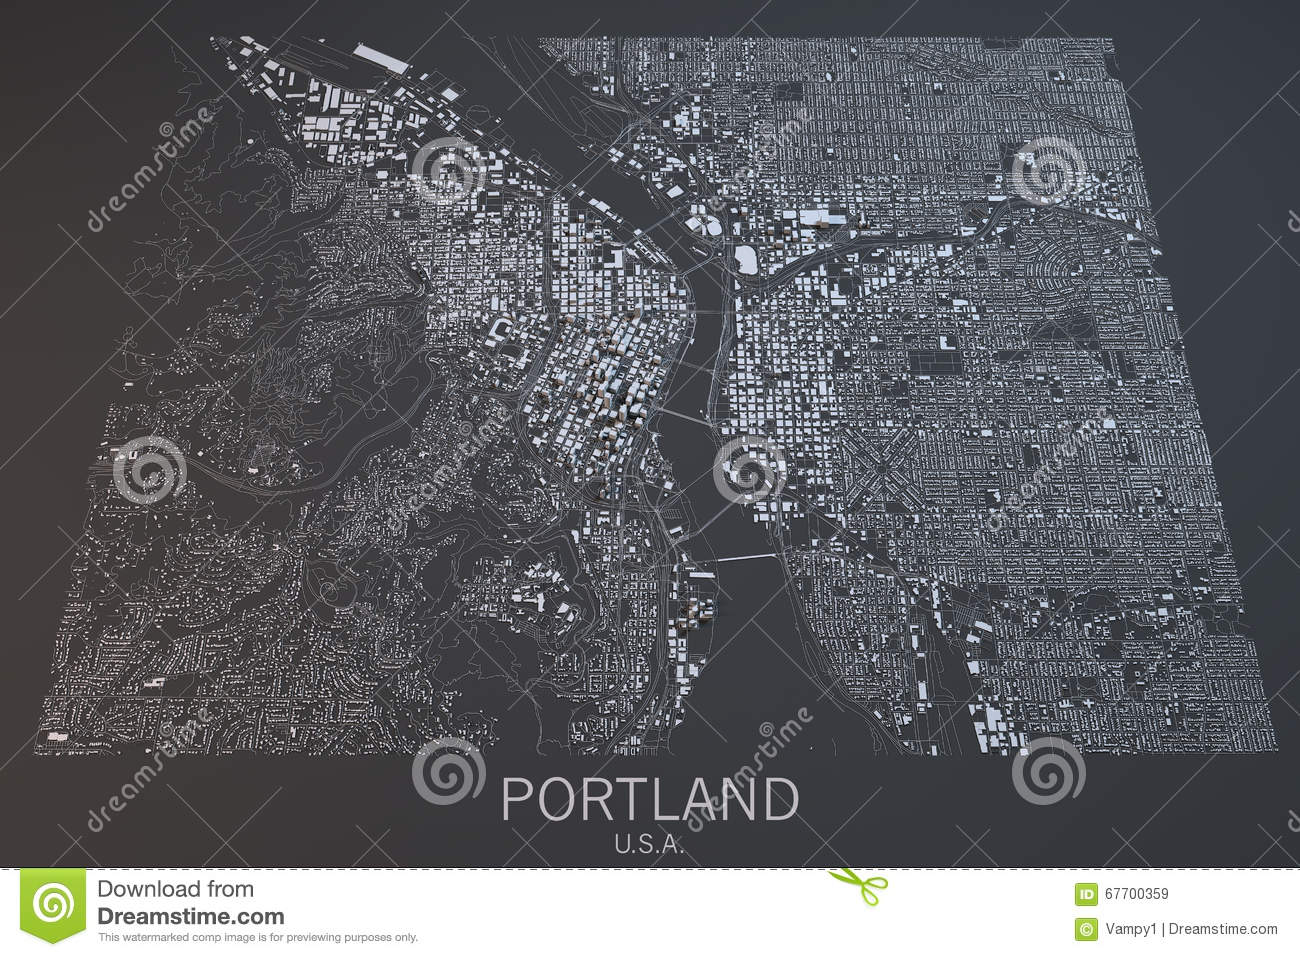 United States Map Satellite.Portland Map Satellite View United States Stock Image Image Of